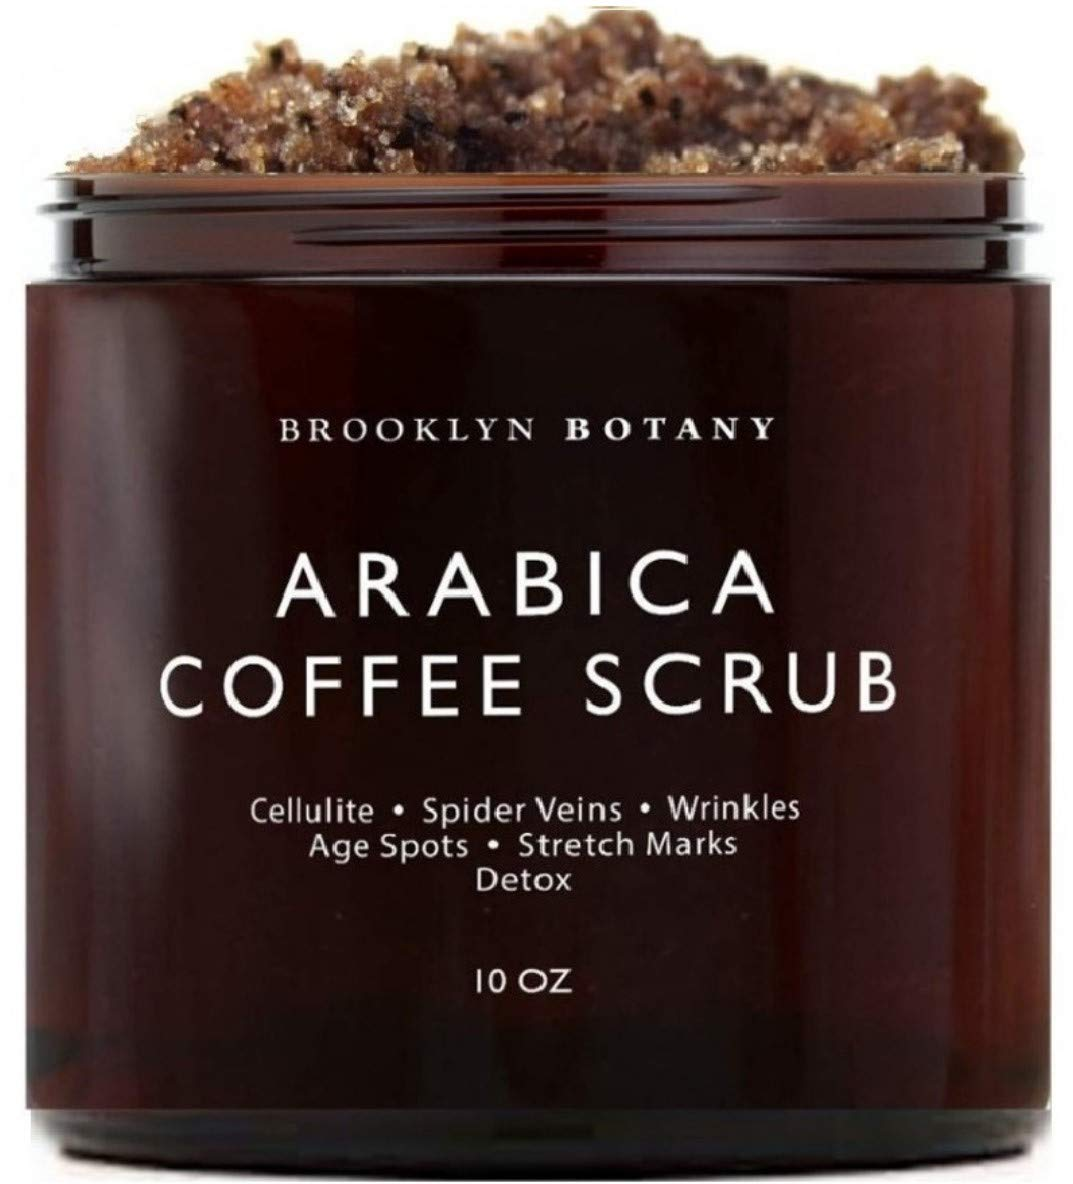 Brooklyn Botany Arabica Coffee Body & Face Scrub -100% Natural - with Coconut and Shea Butter - Best Anti Cellulite and Stretch Mark Treatment, Spider Vein Therapy for Varicose Veins & Eczema - 10 oz by Brooklyn Botany